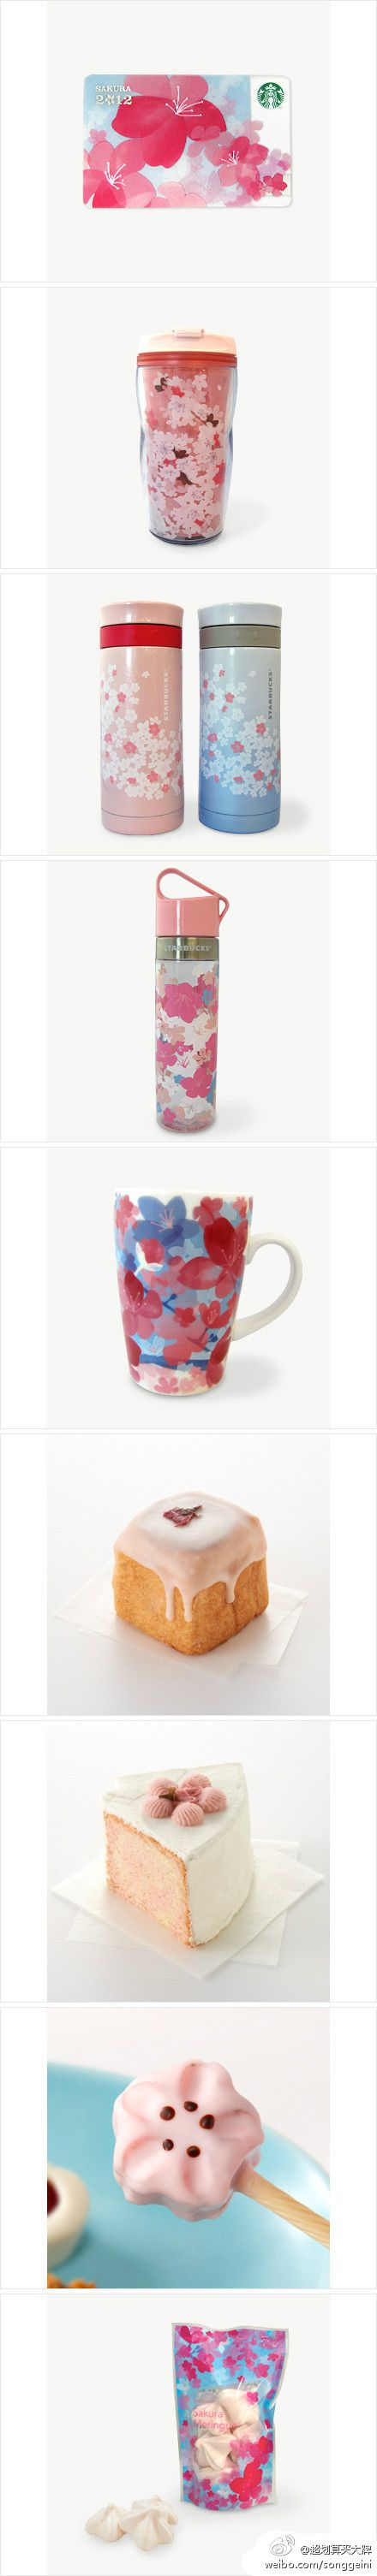 This limited Sakura (Japanese Cherry Blossom) collection in Starbucks only release in Japan... but I still love them~!